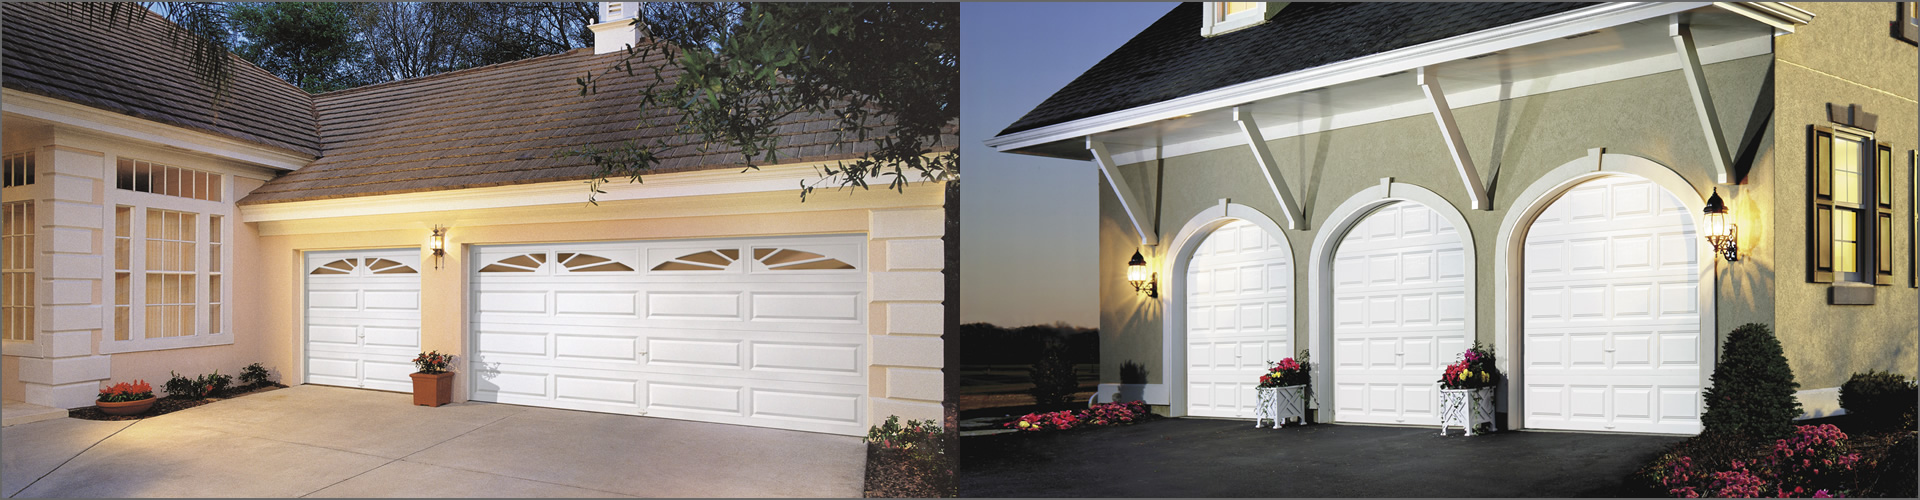 the throughout is choice top door for service pin garage nc your charlotte neighborhood